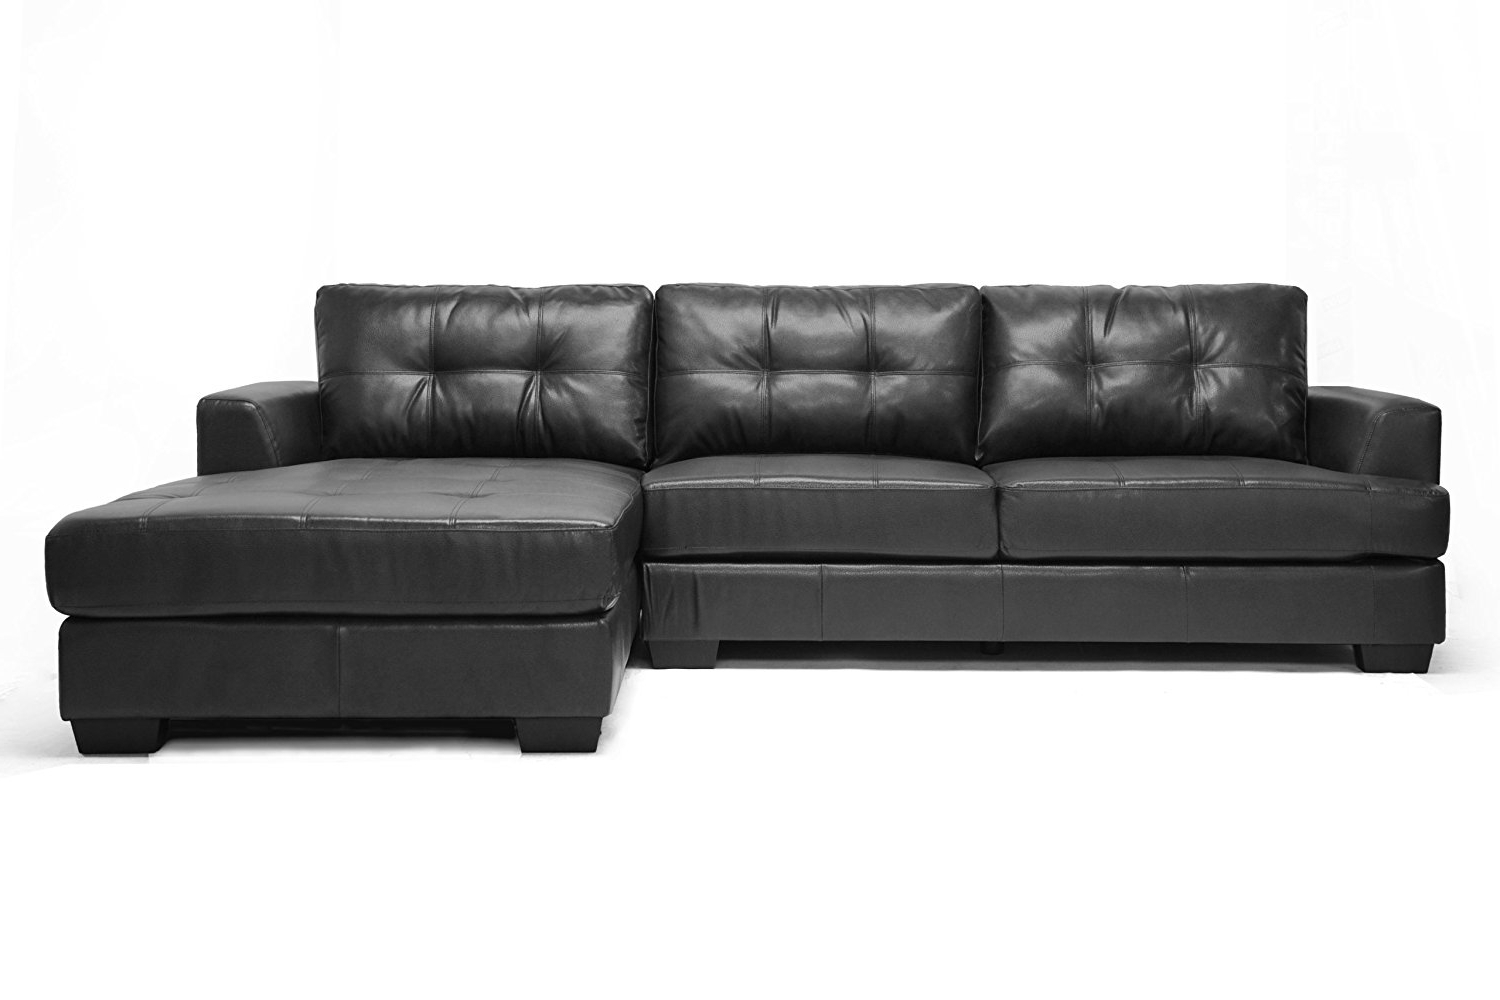 Amazon: Baxton Studio Dobson Leather Modern Sectional Sofa Within Widely Used Leather Sectional Chaises (View 1 of 15)